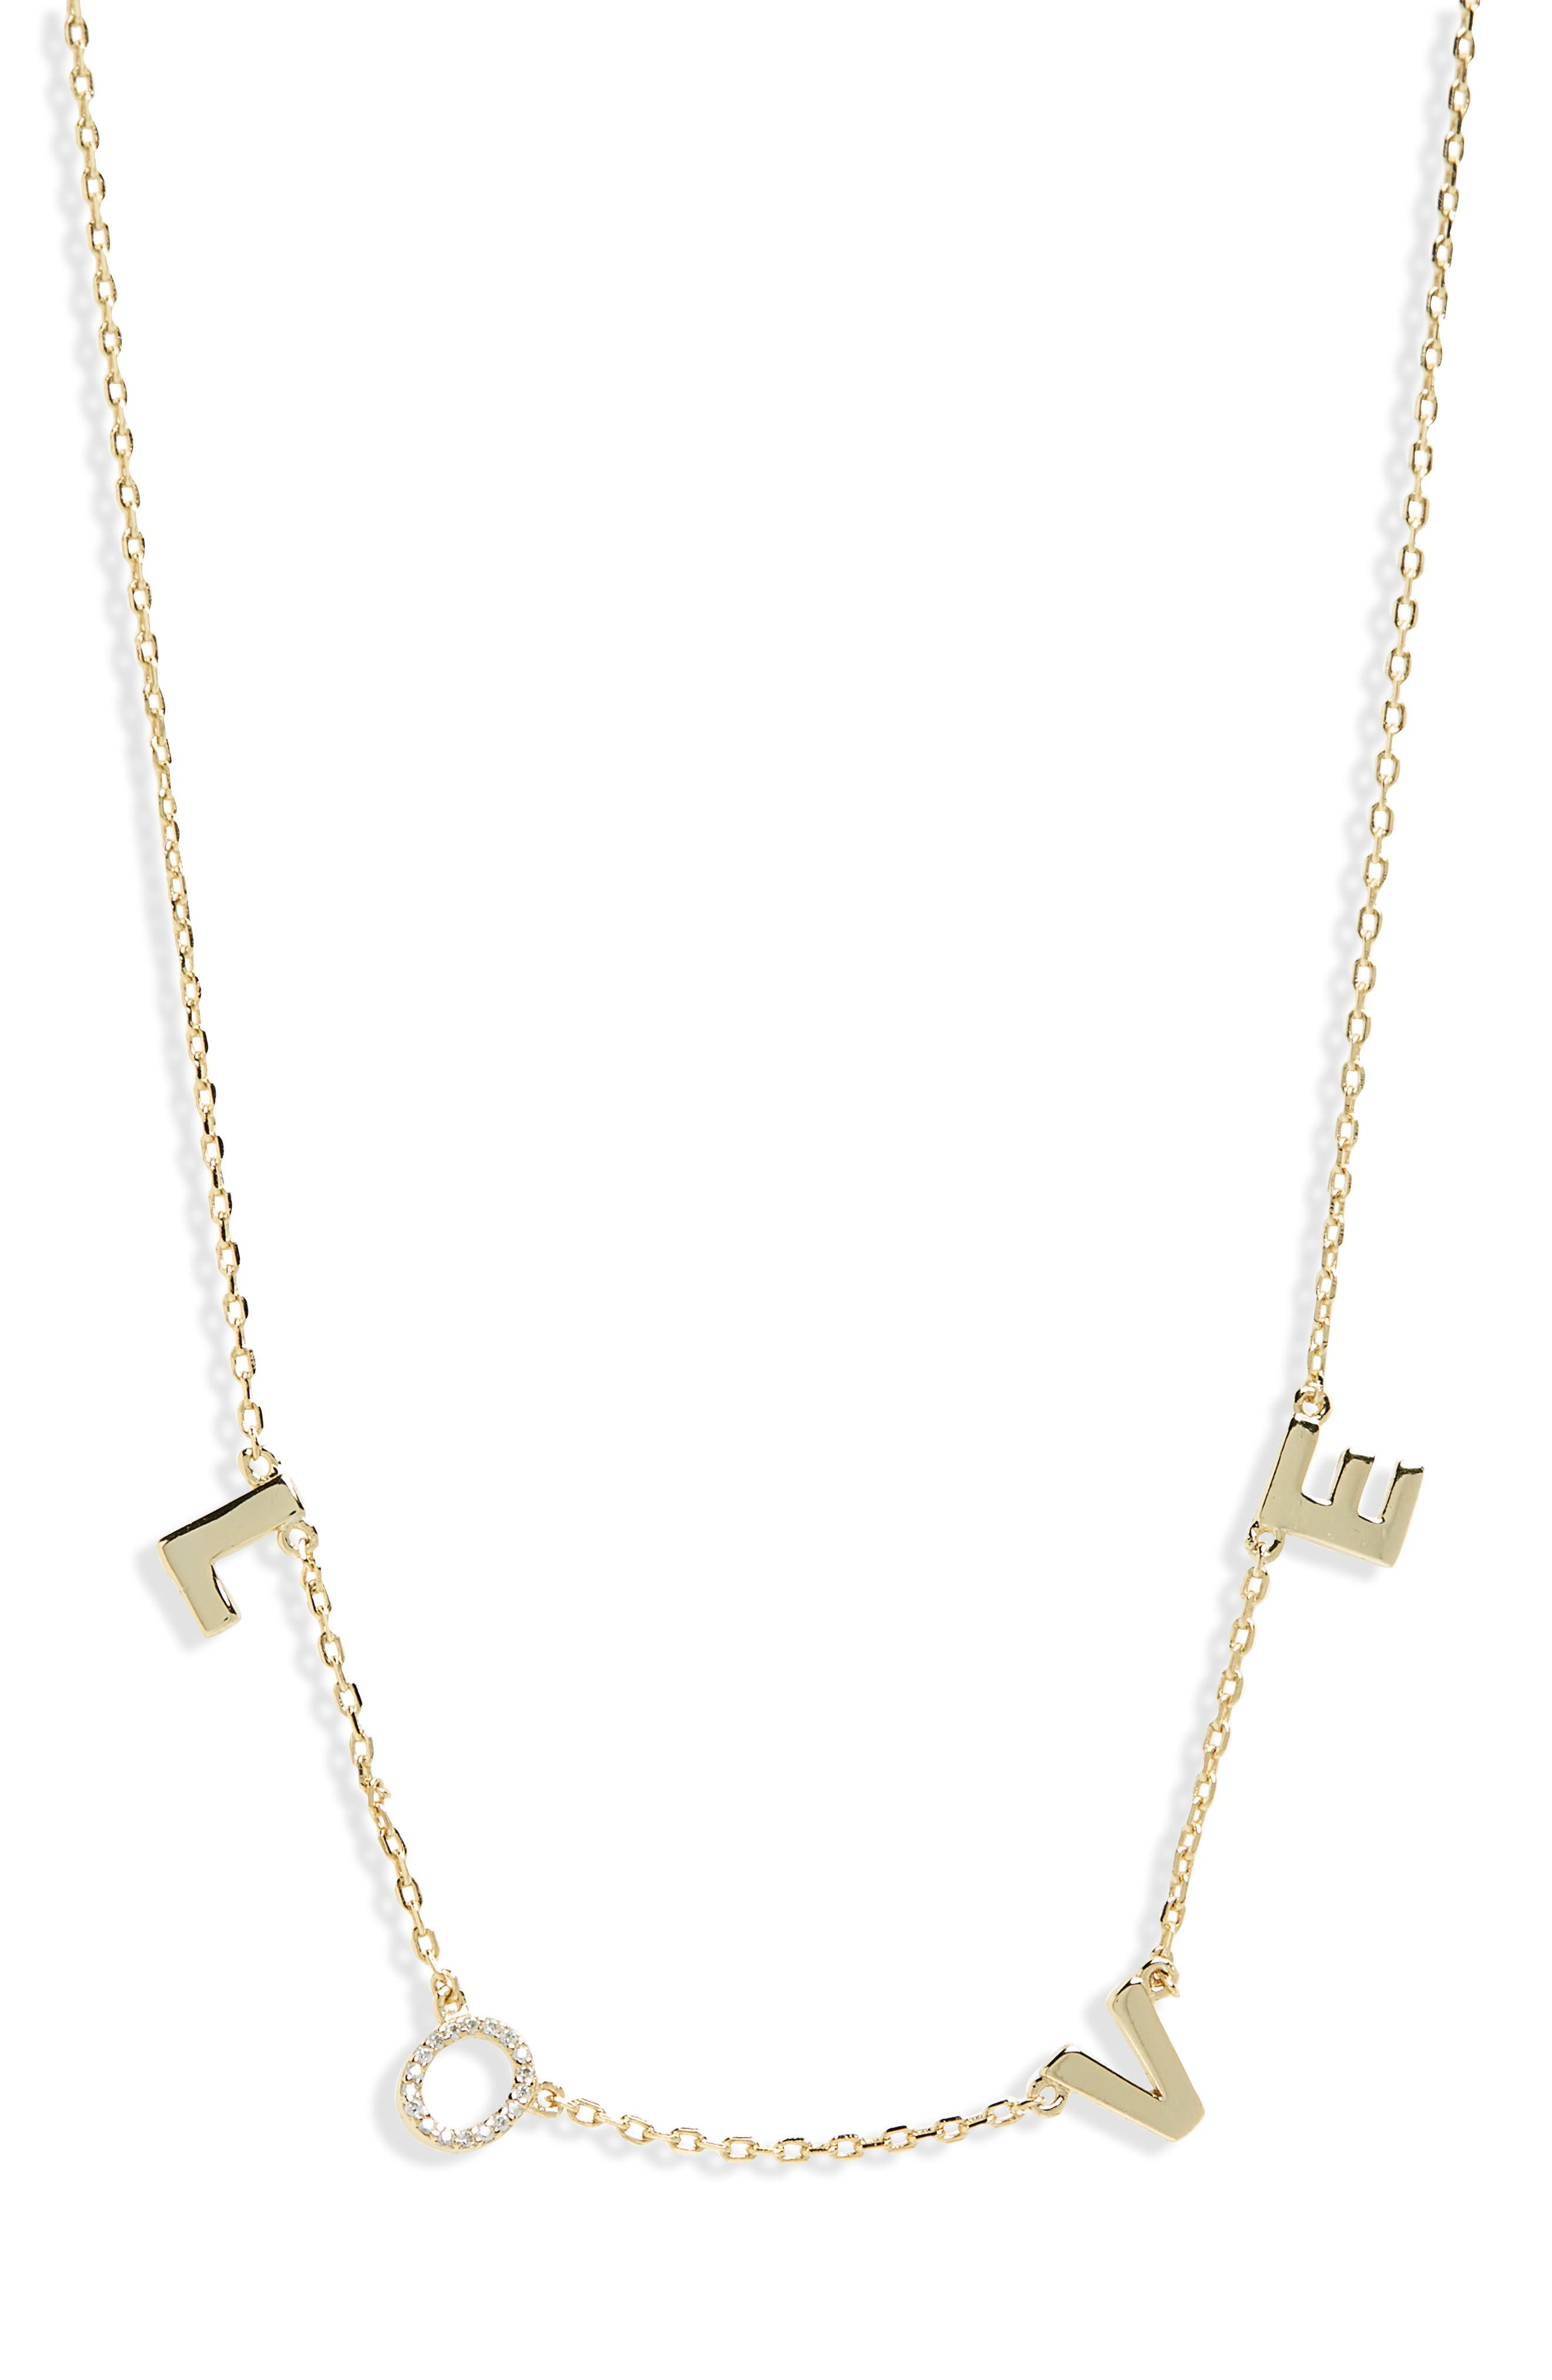 Crystal Love Necklace,                             Main thumbnail 1, color,                             Yellow Gold